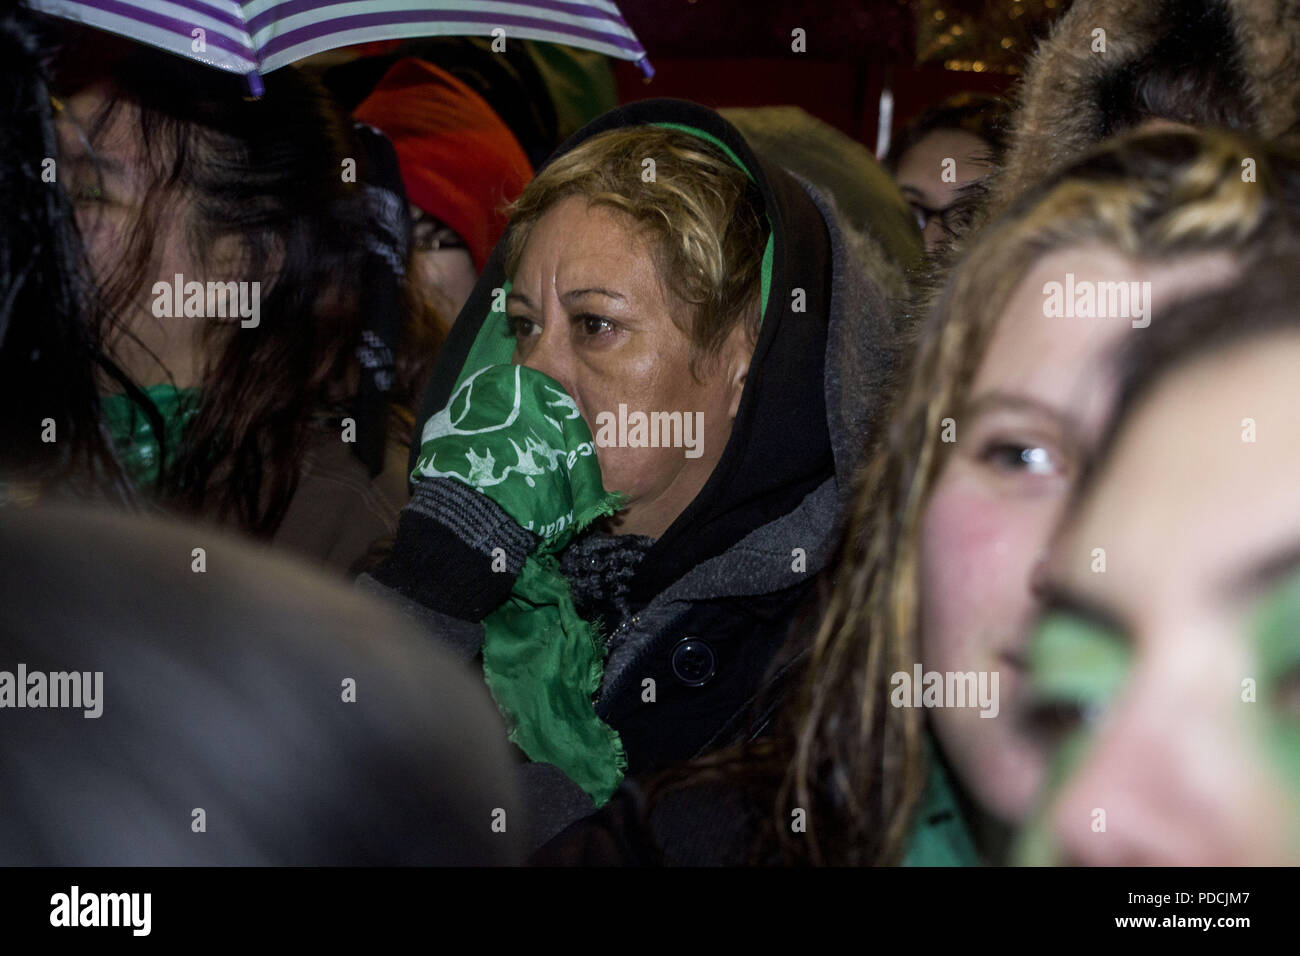 Buenos Aires, Federal Capital, Argentina. 8th Aug, 2018. In the vicinity of the Congress of the Argentine Nation the people who were in favor of the approval of the Law of Free and Legal Abortion observe incredulous and with much frustration as the majority of the senators were voting against, despite having been approved in chamber of deputies, which would force to introduce a new proposal of law next year (2019), all this under a constant rain, strong winds and temps that came to be below 7º C. Credit: Roberto Almeida Aveledo/ZUMA Wire/Alamy Live News - Stock Image